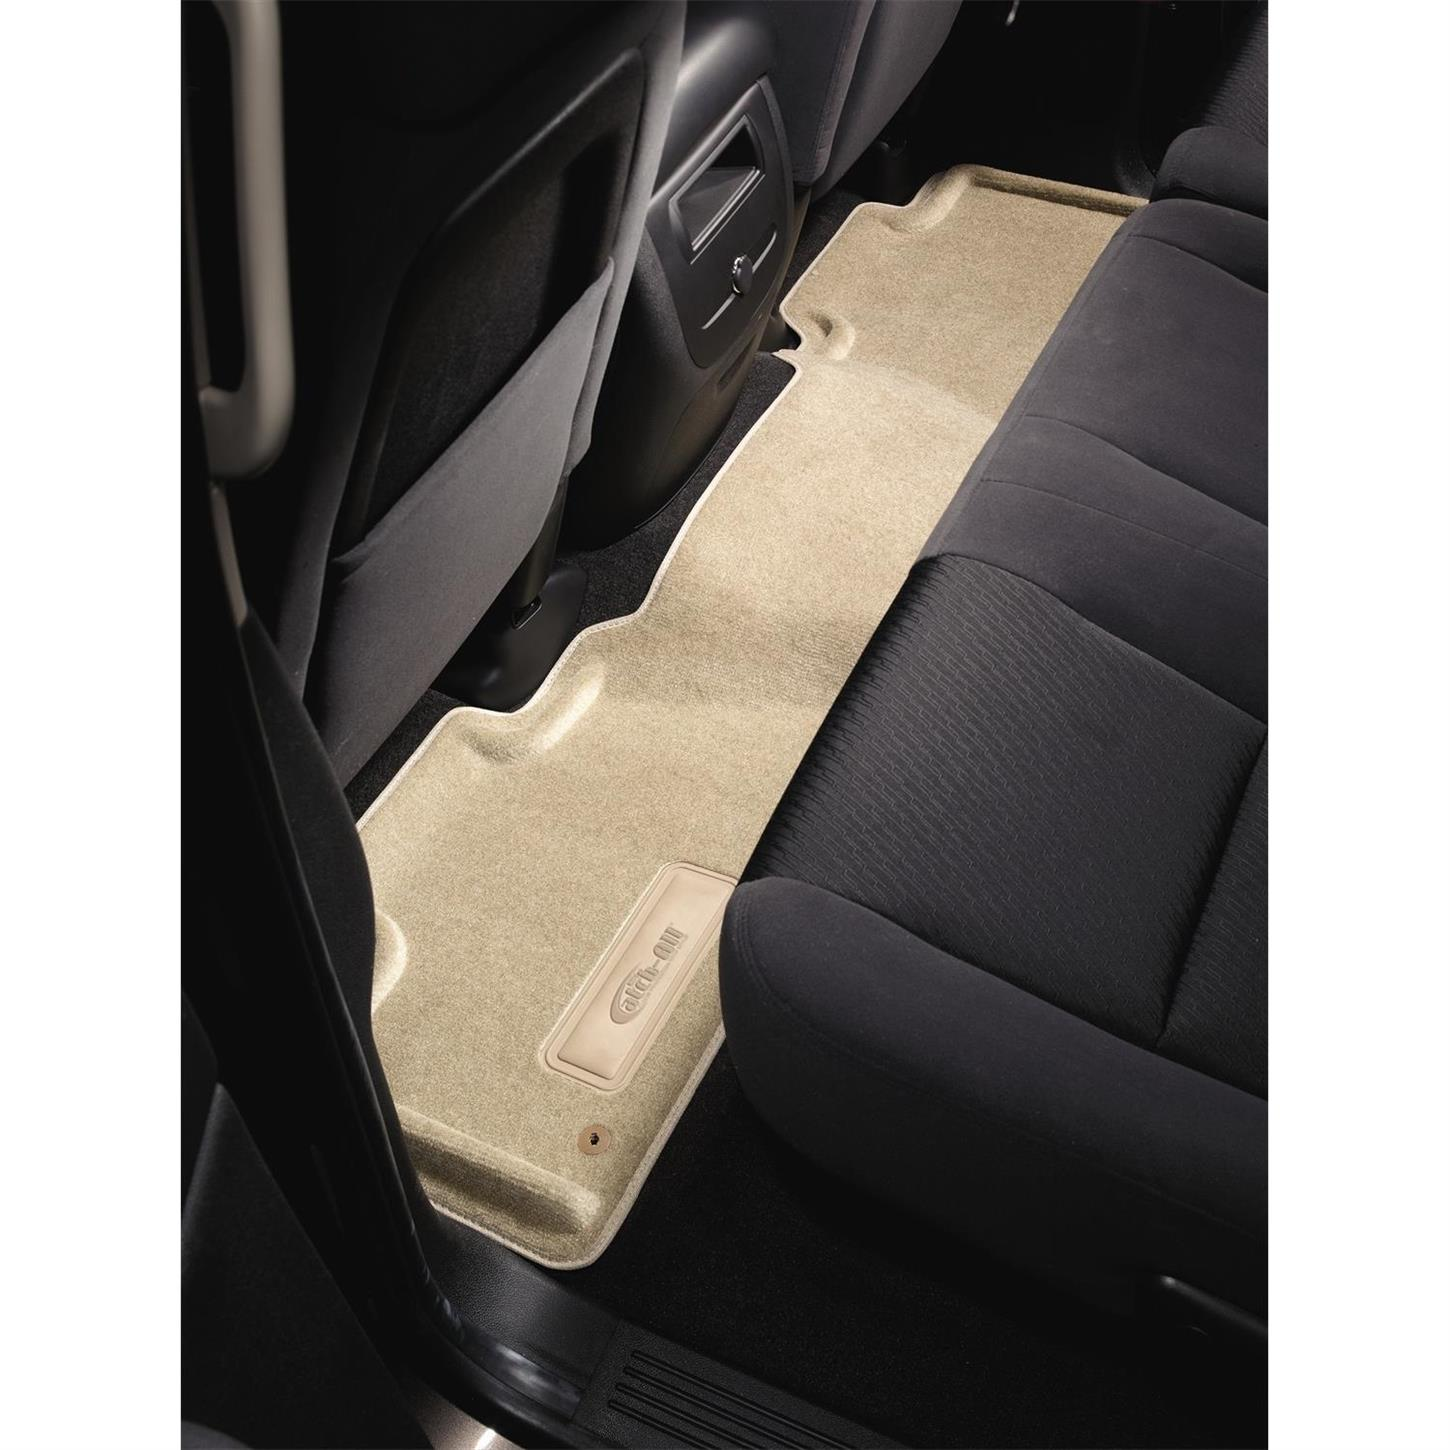 Beige Lund  659670  Catch-All Premium Floor Protection Carpet 2nd /& 3rd Seat